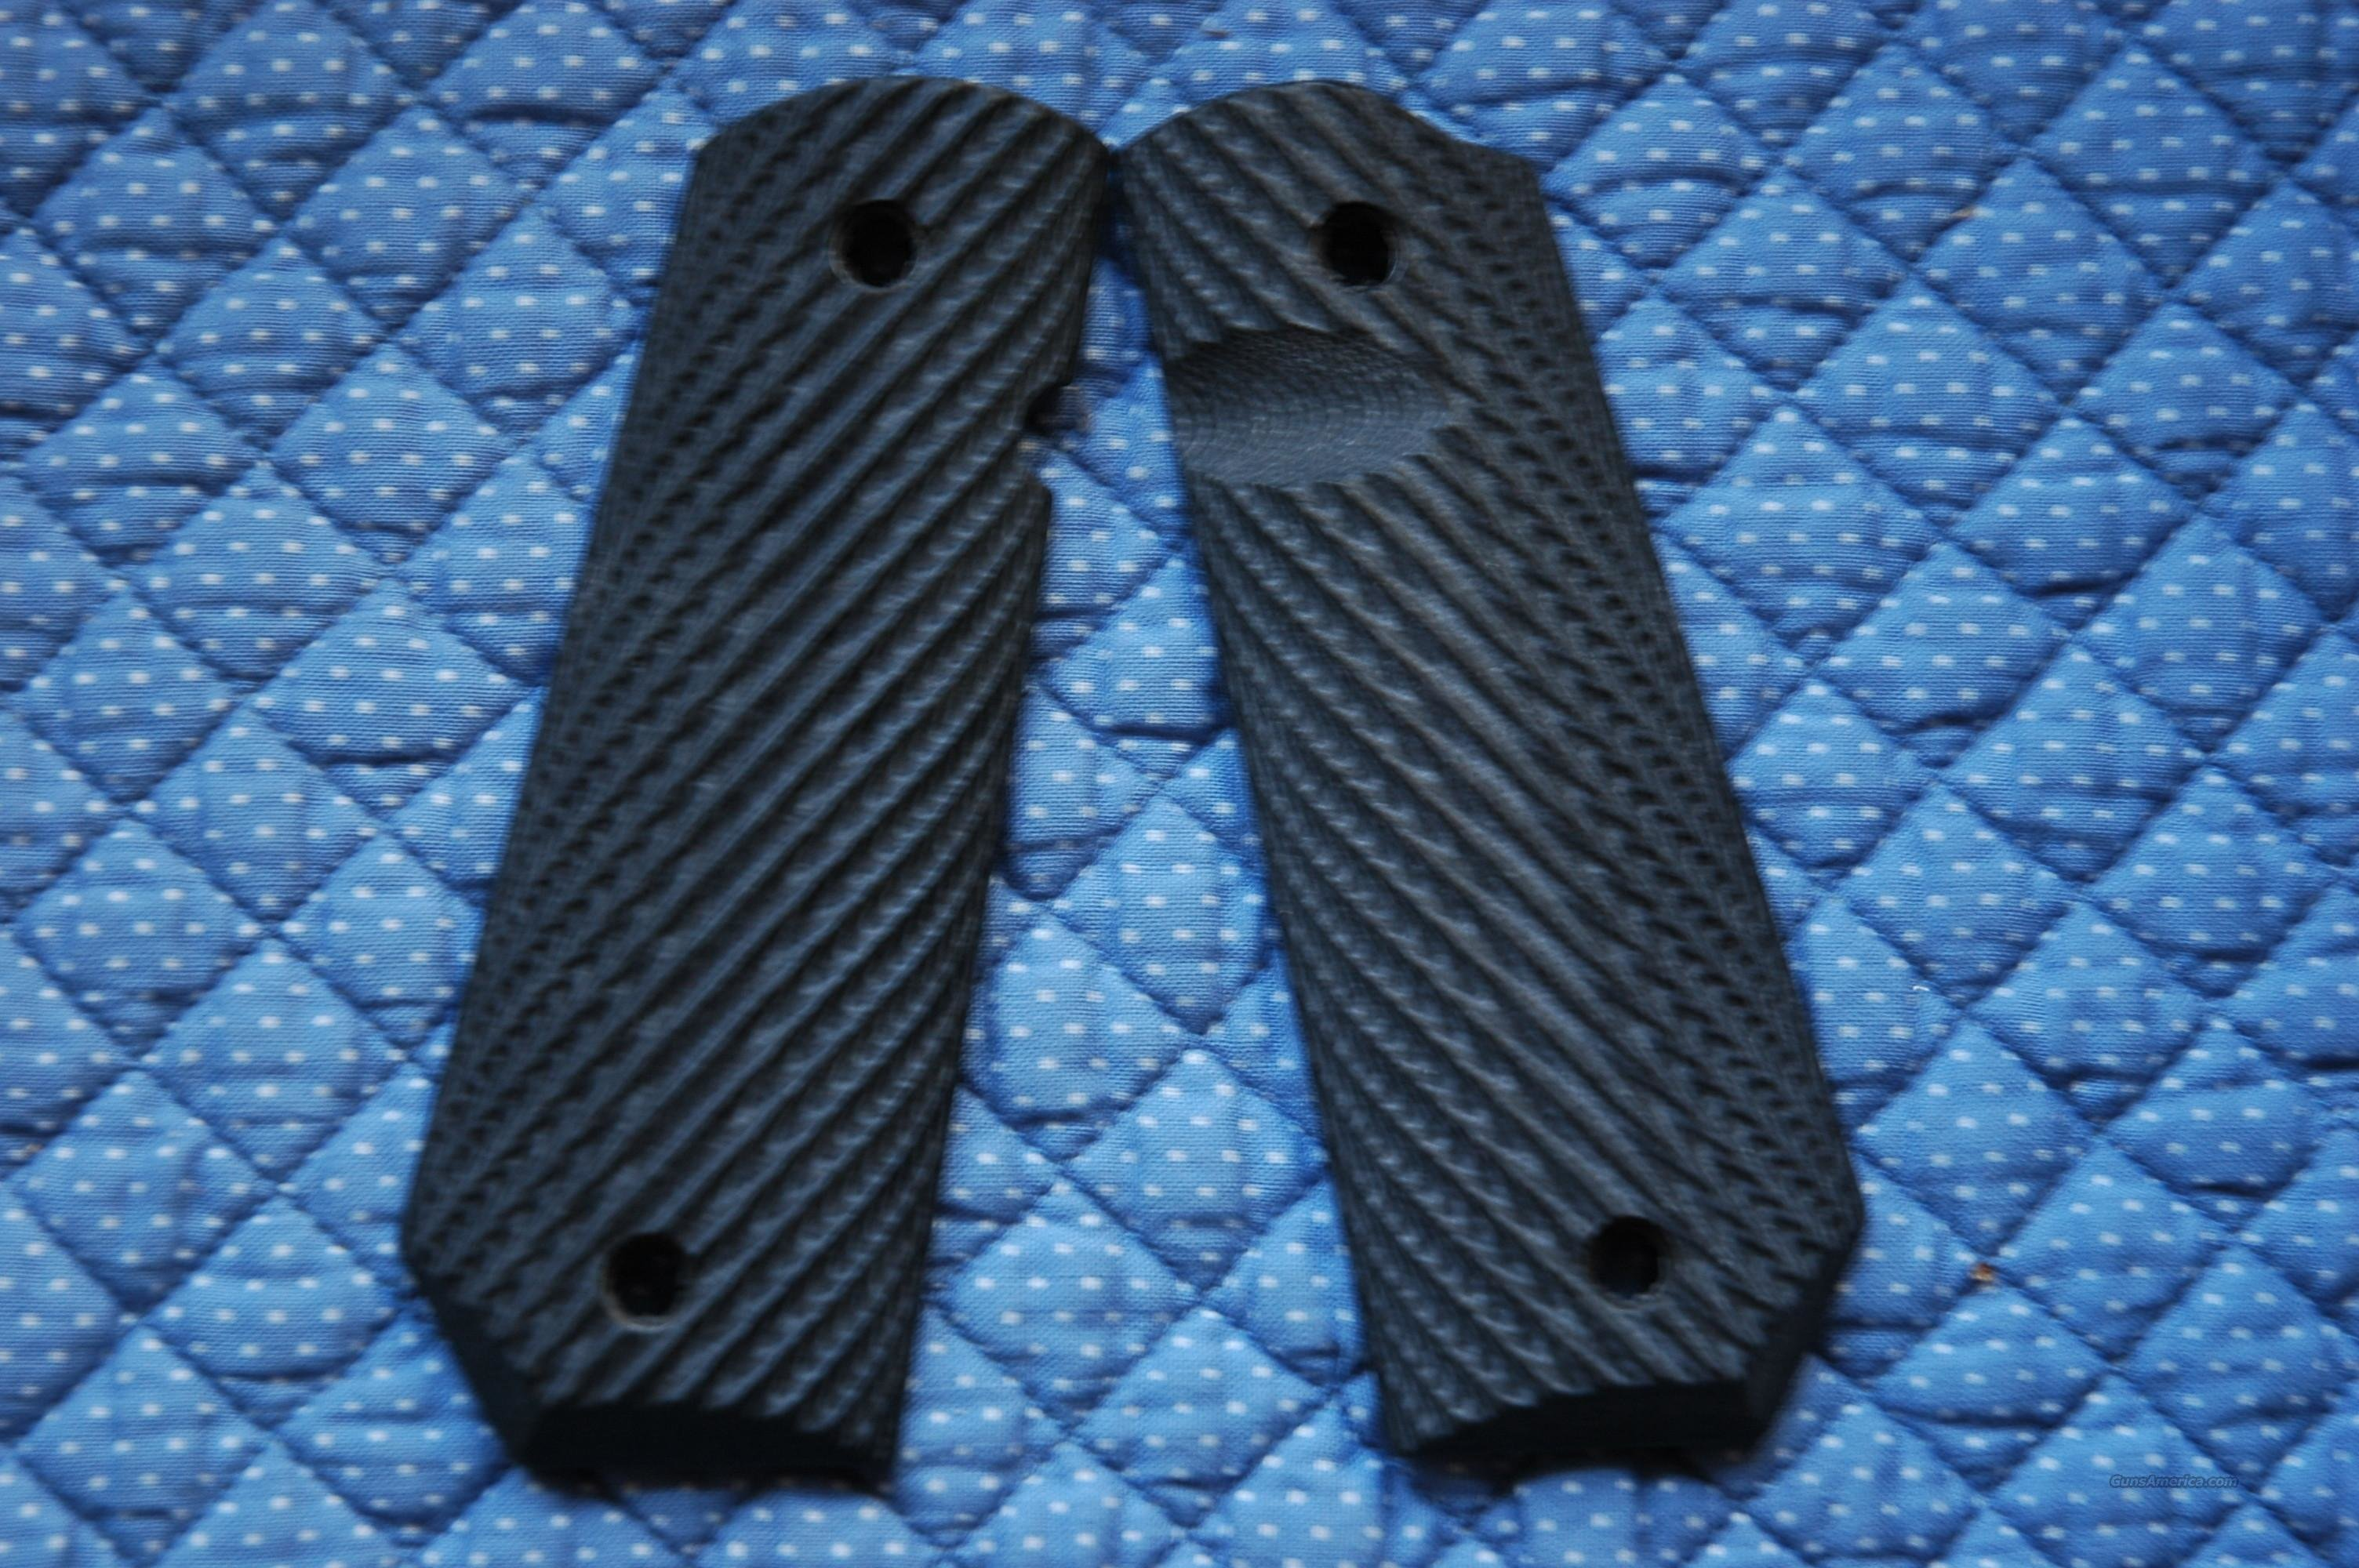 Mil-Tac tactical carry grips 1911 bobtail striking  Non-Guns > Gunstocks, Grips & Wood